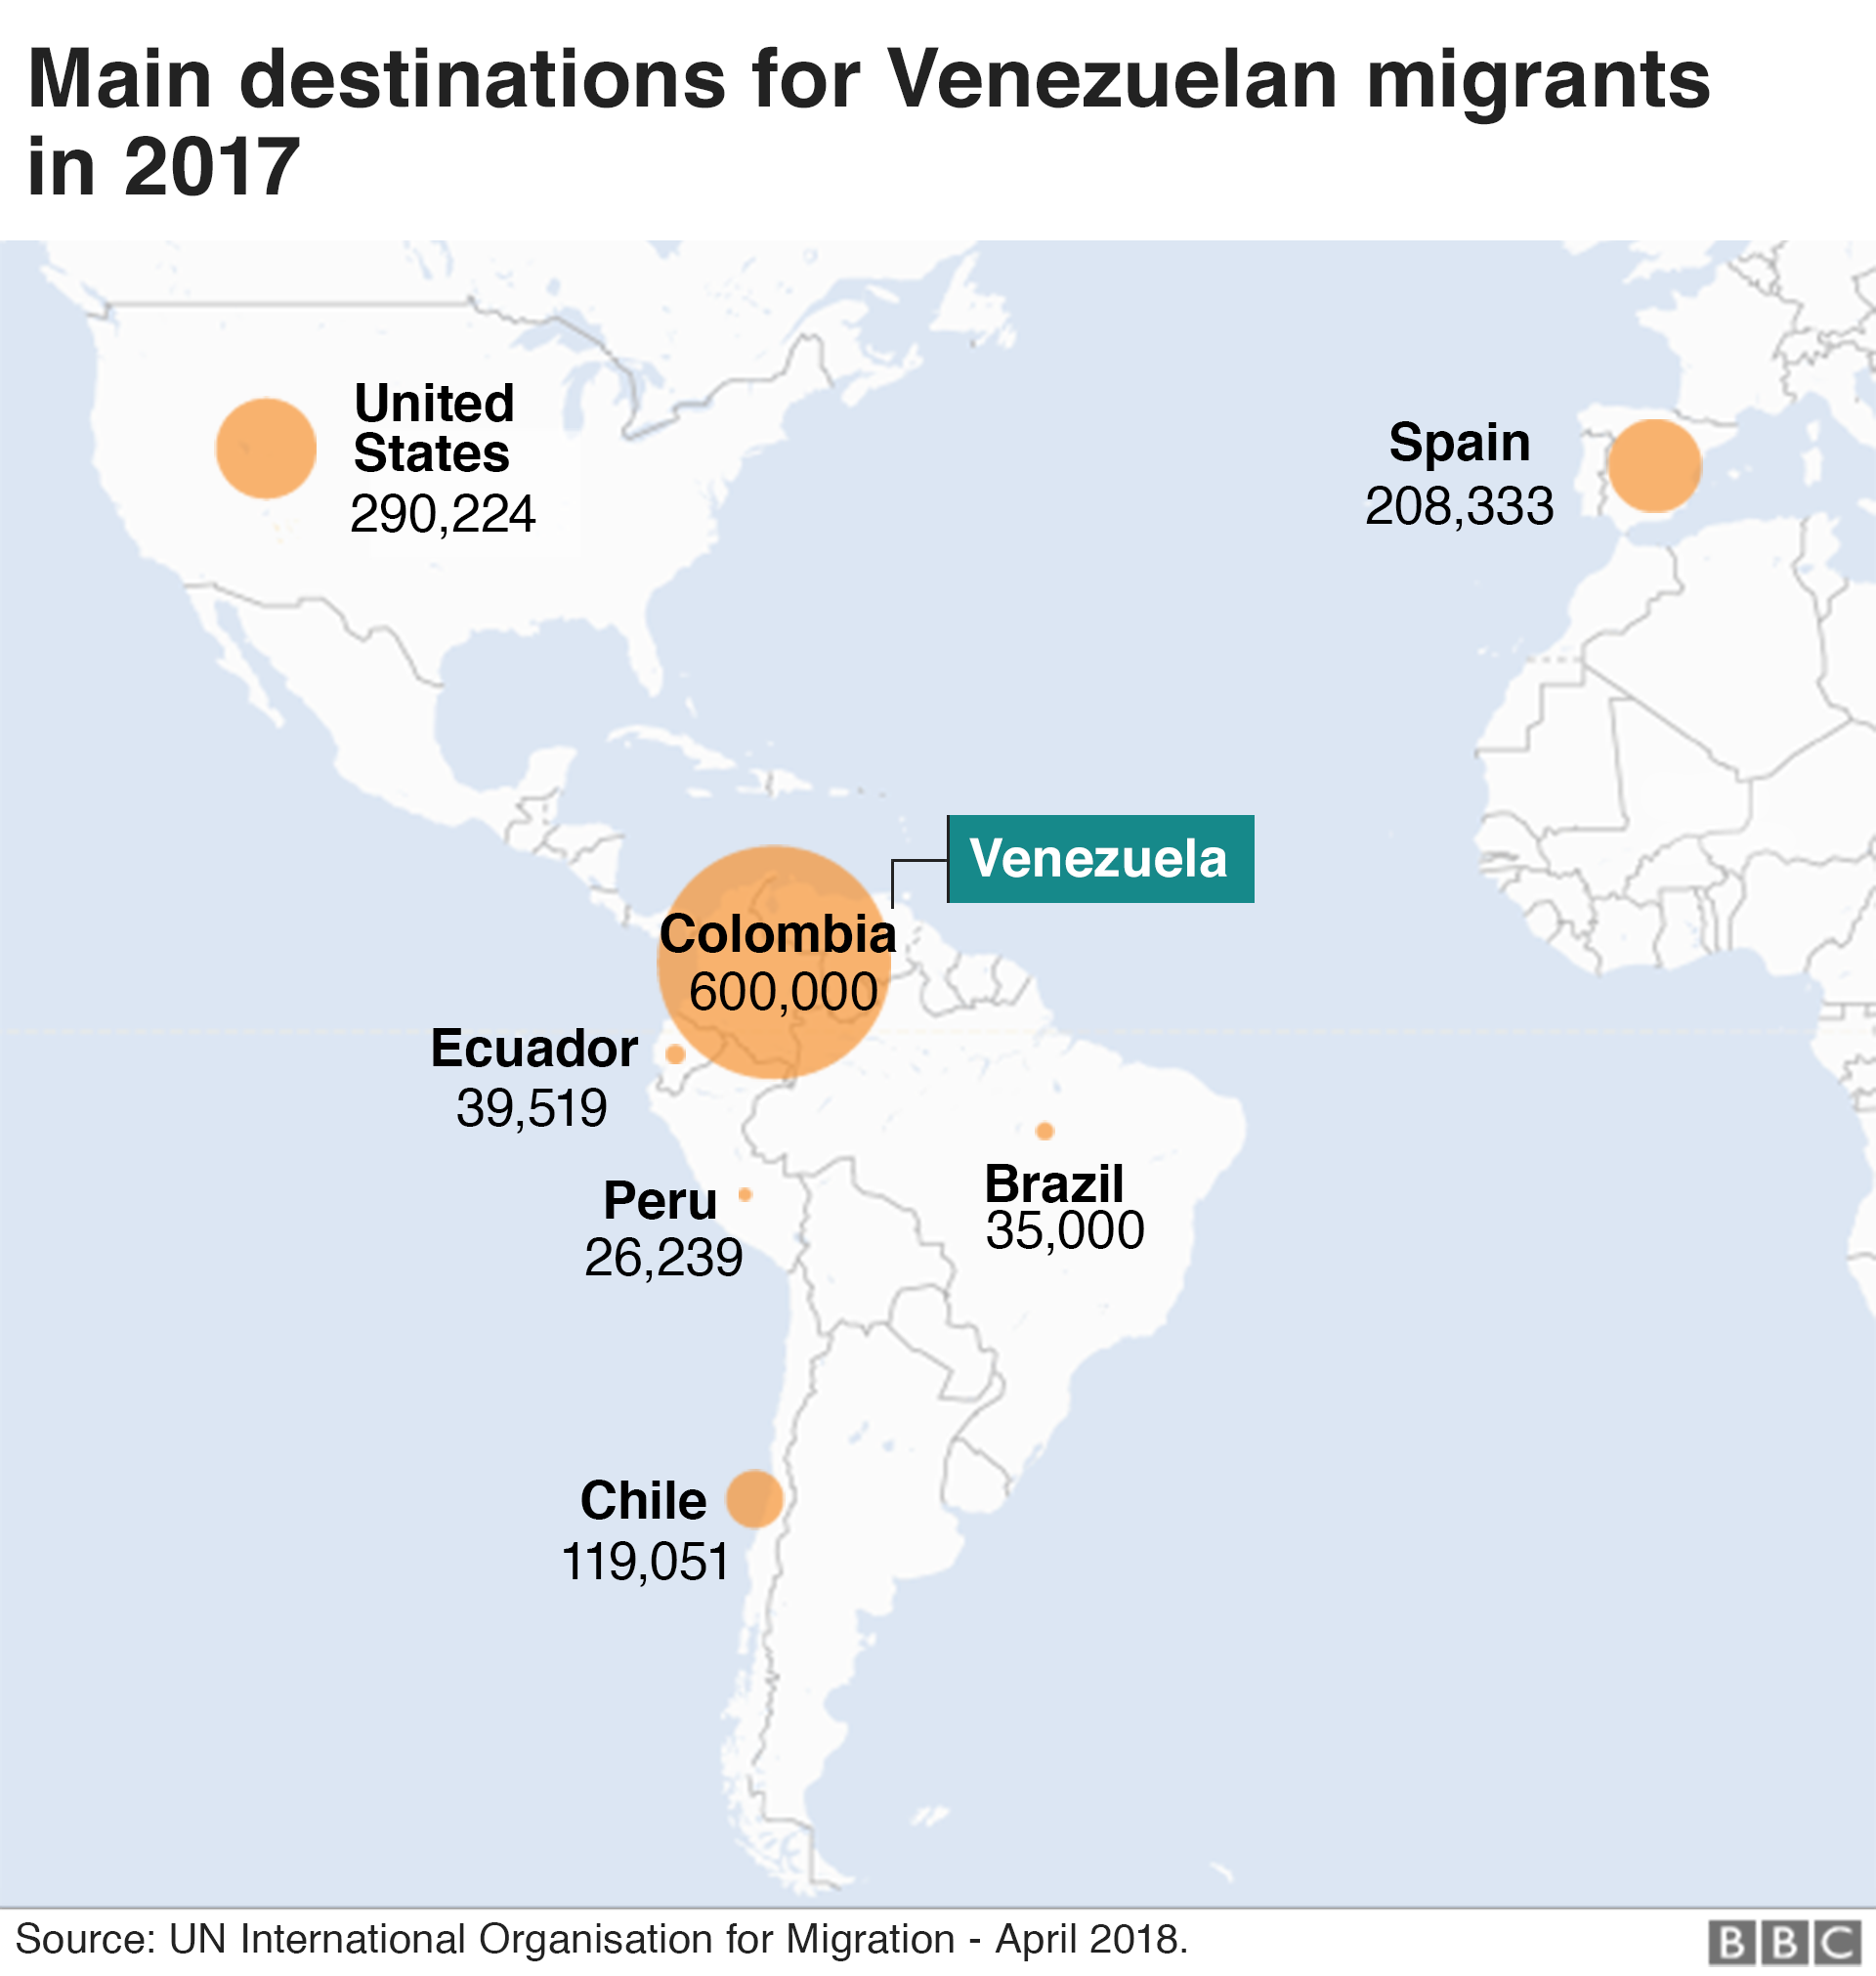 Map of main destinations for Venezuelan migrants